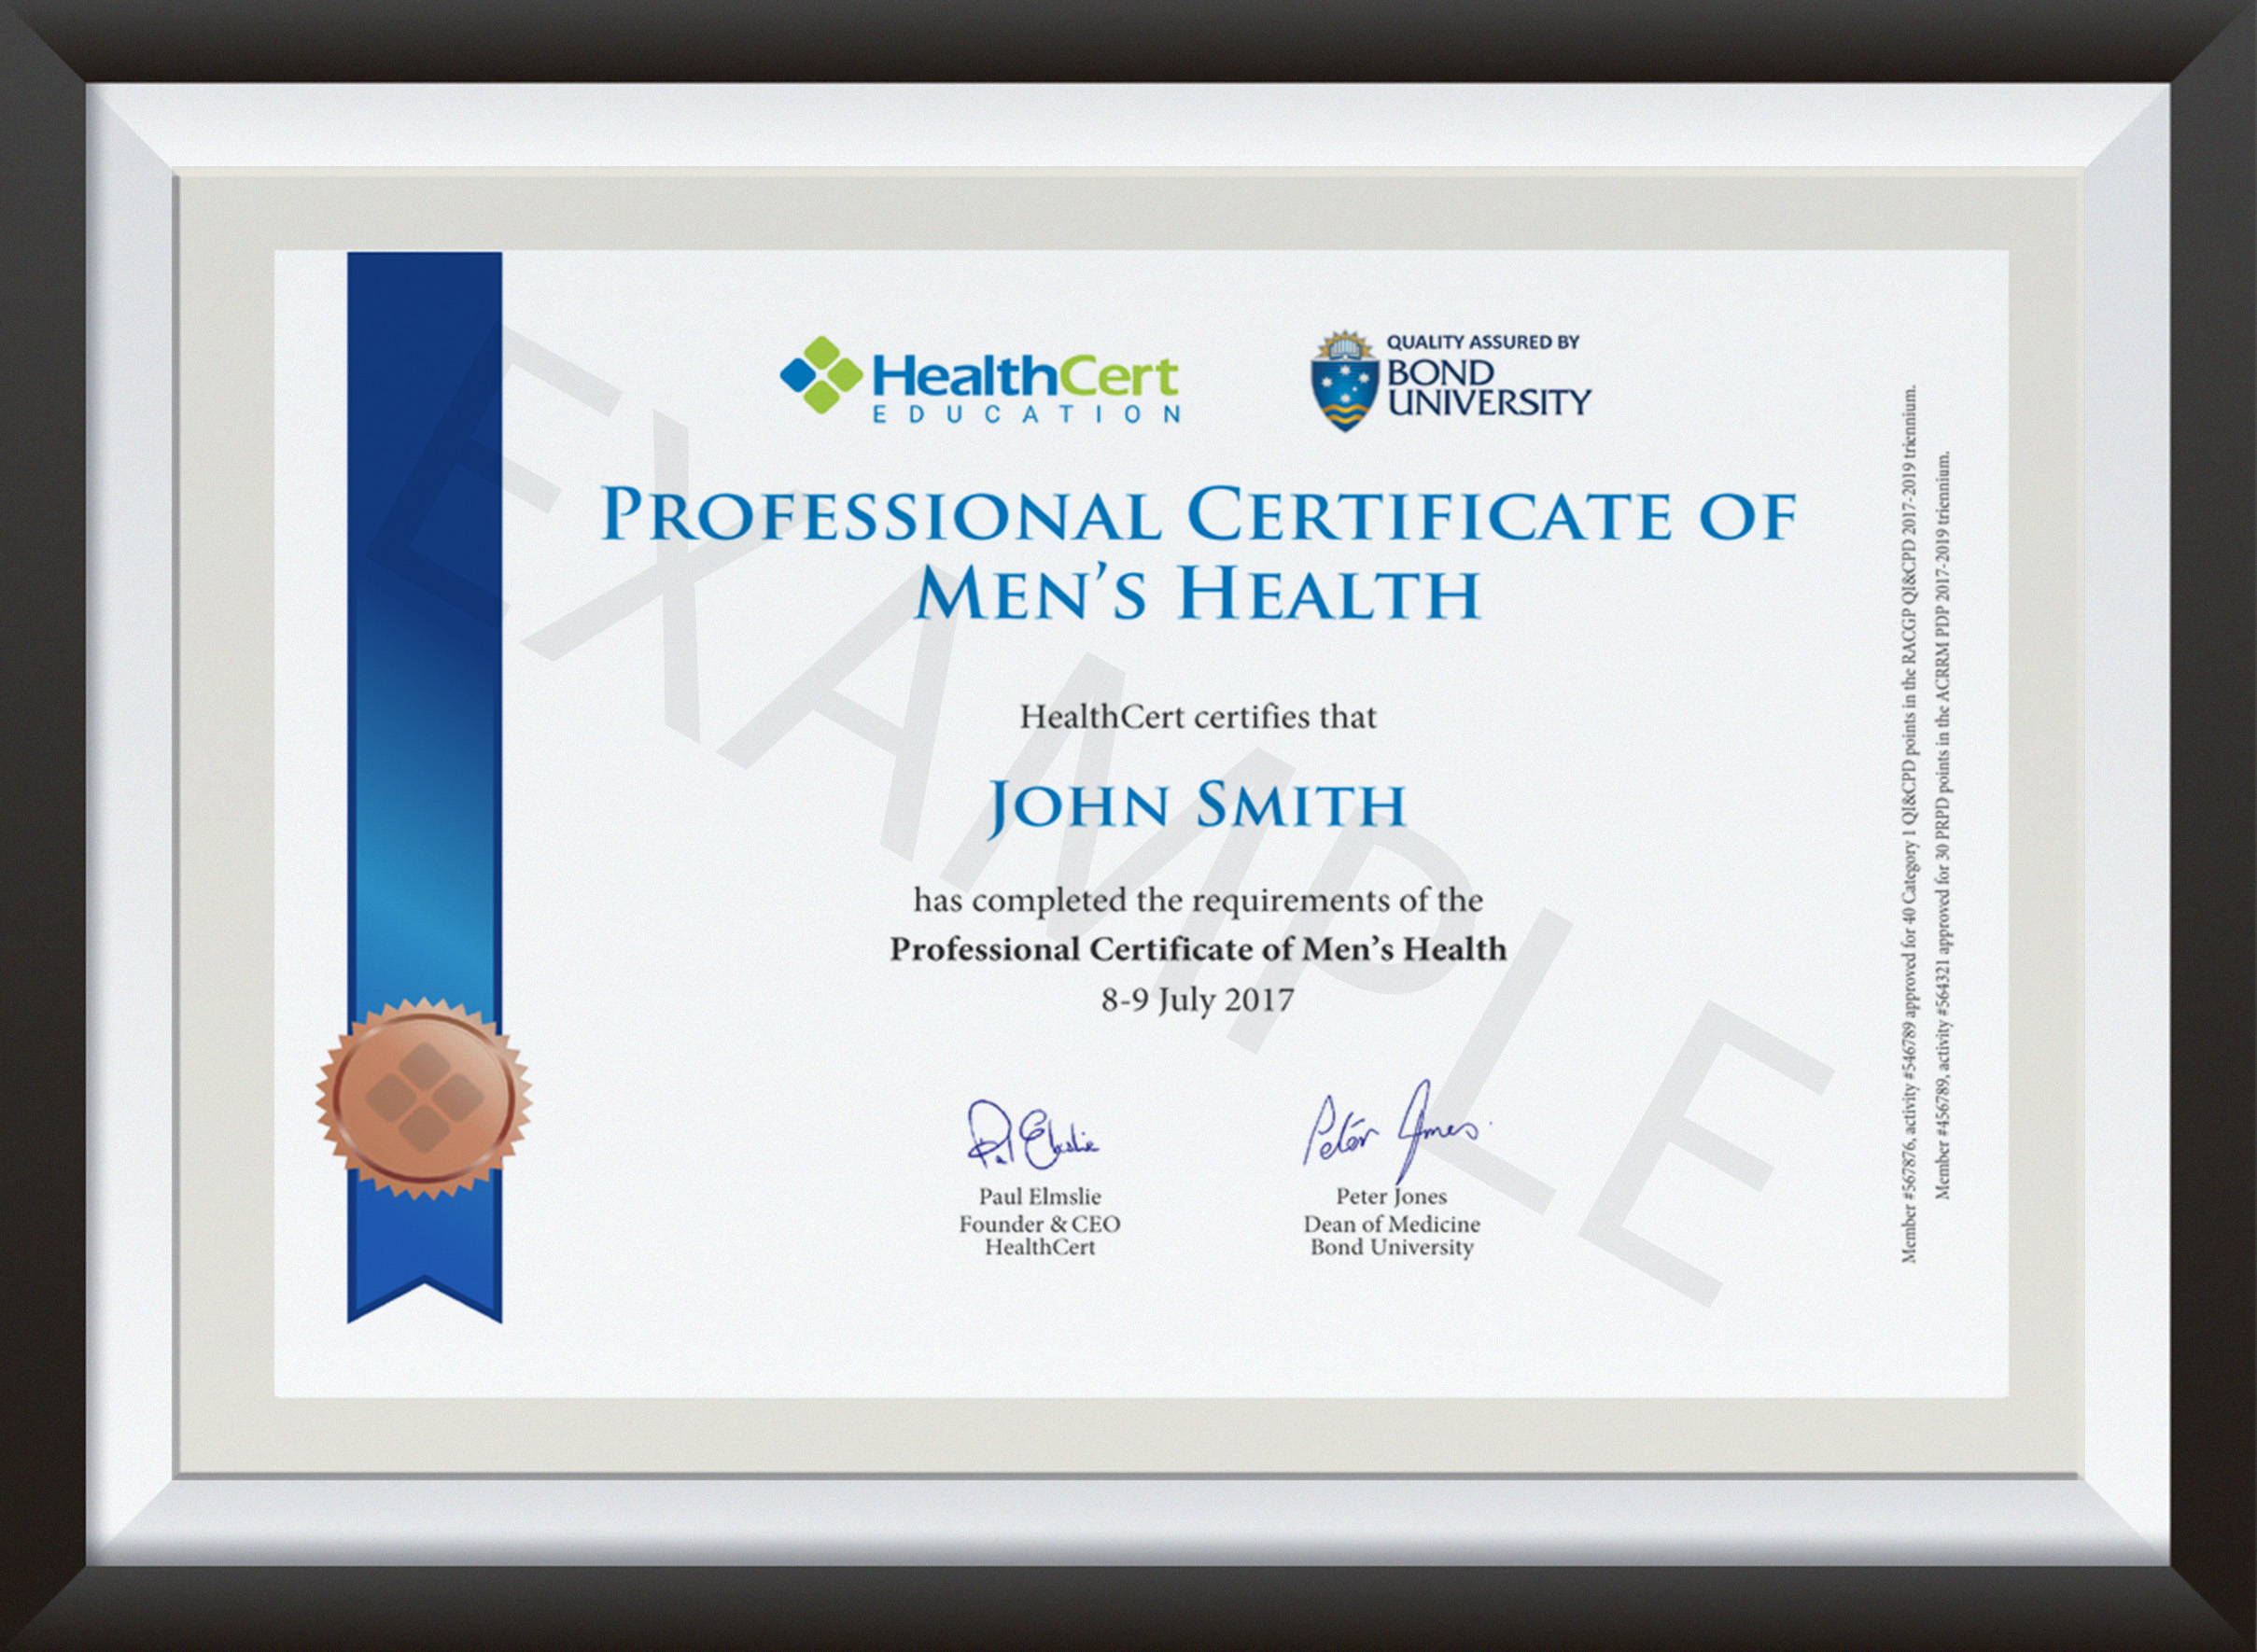 Professional Certificate of Men's Health